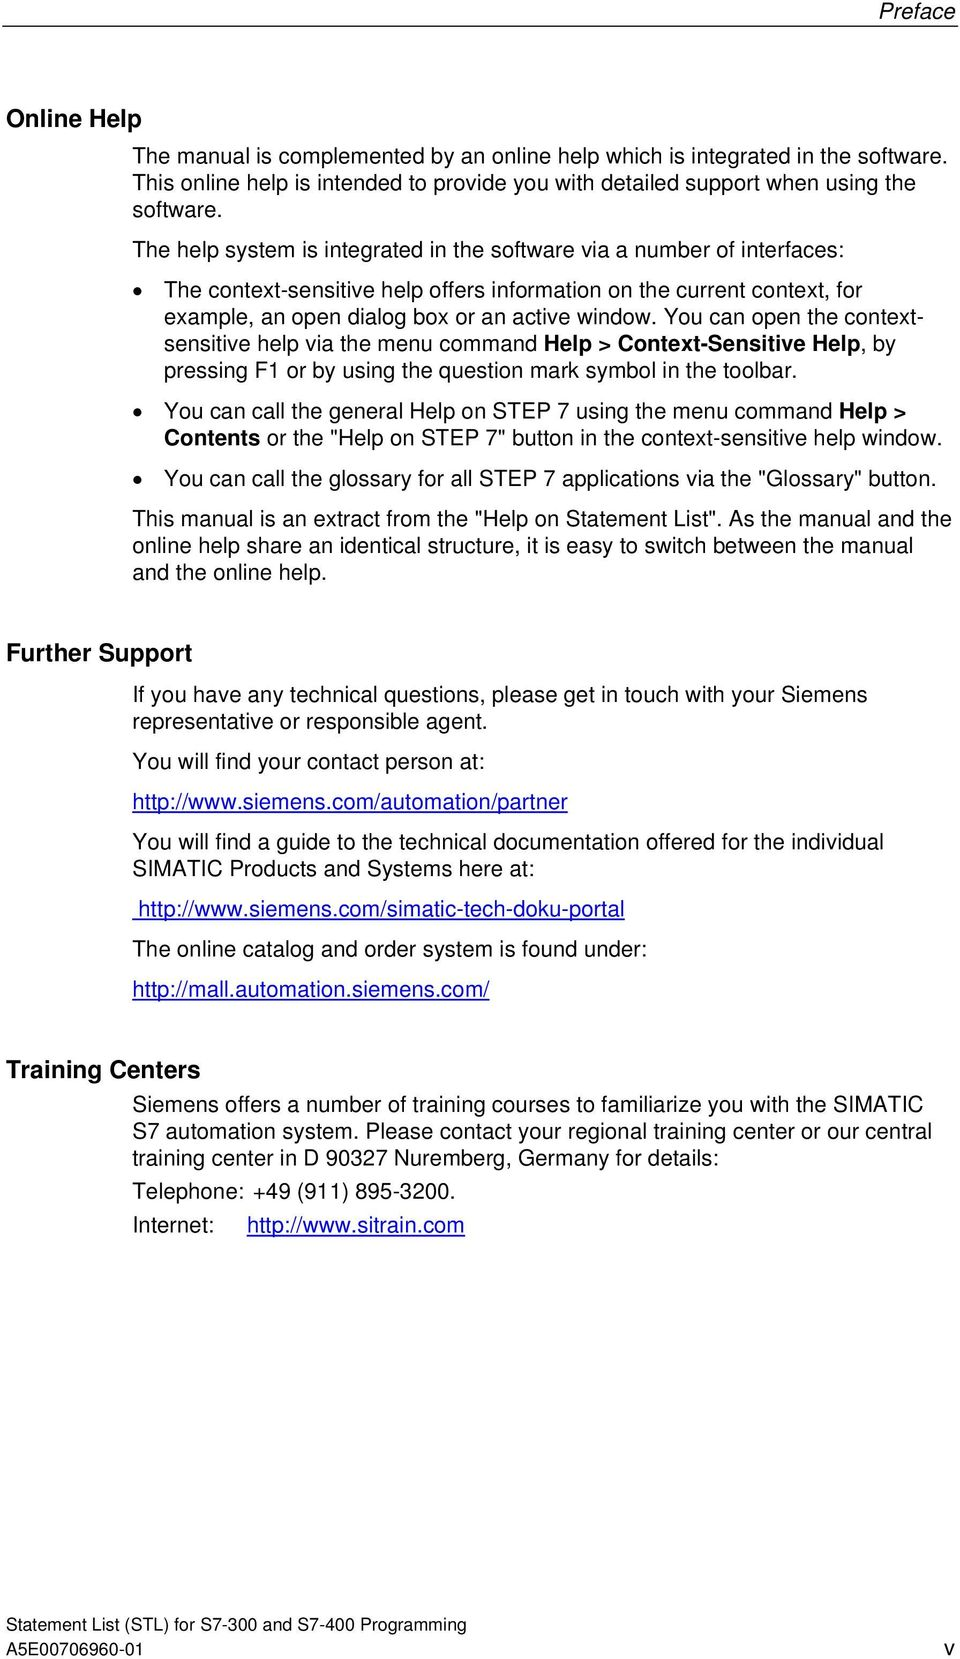 SIMATIC  Statement List (STL) for S7-300 and S7-400 Programming A B